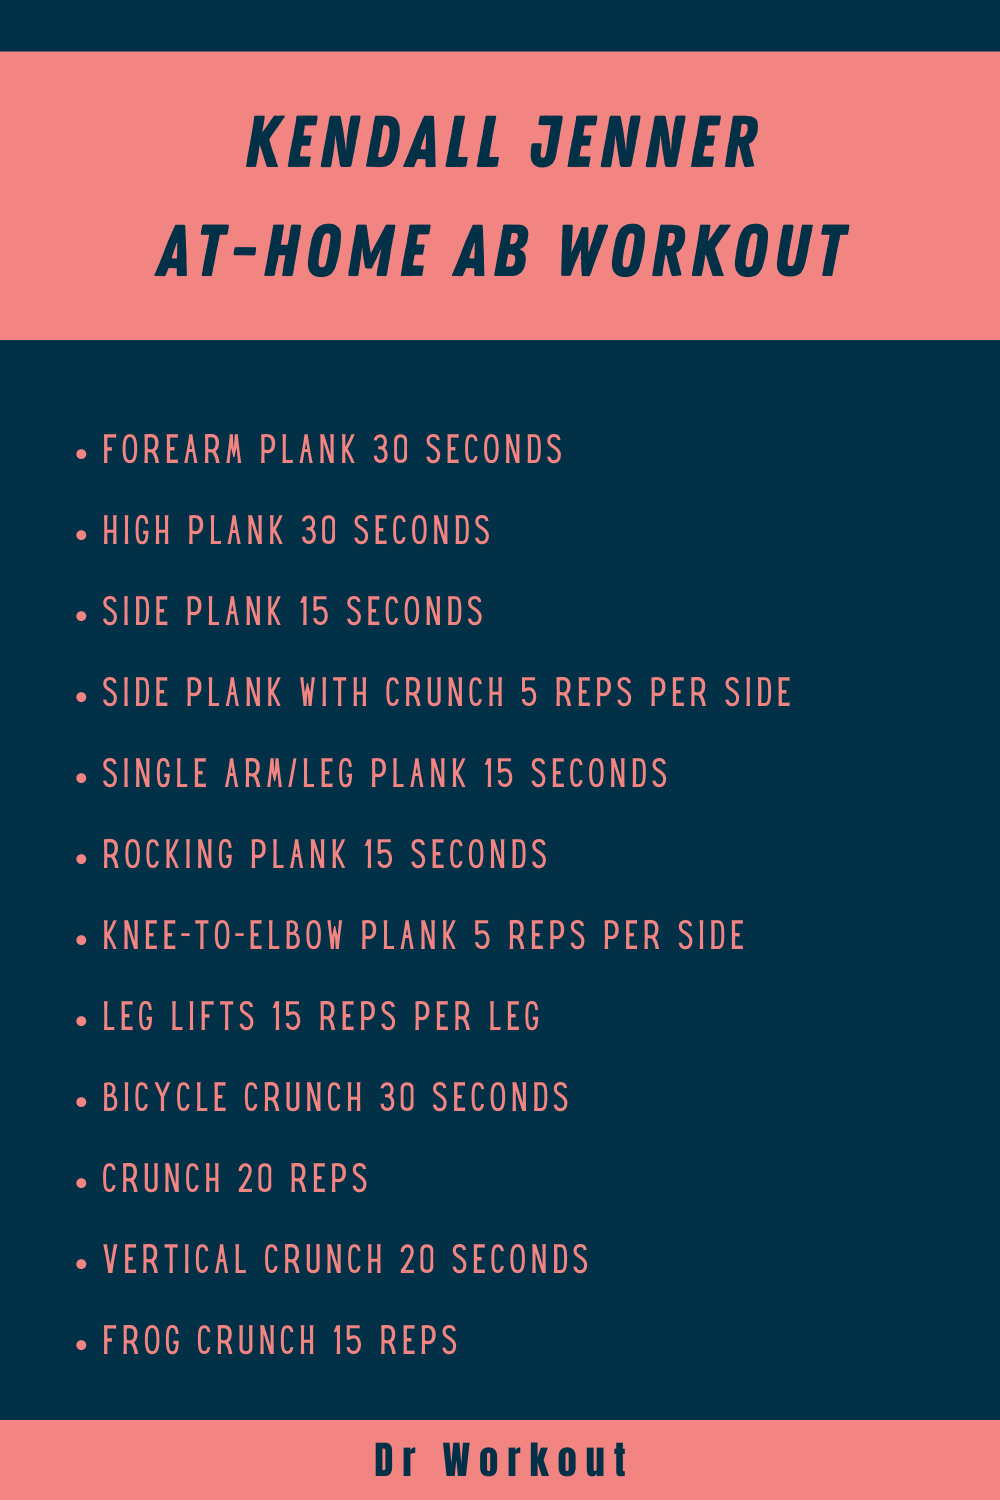 Kendall Jenner At-Home Ab Workout